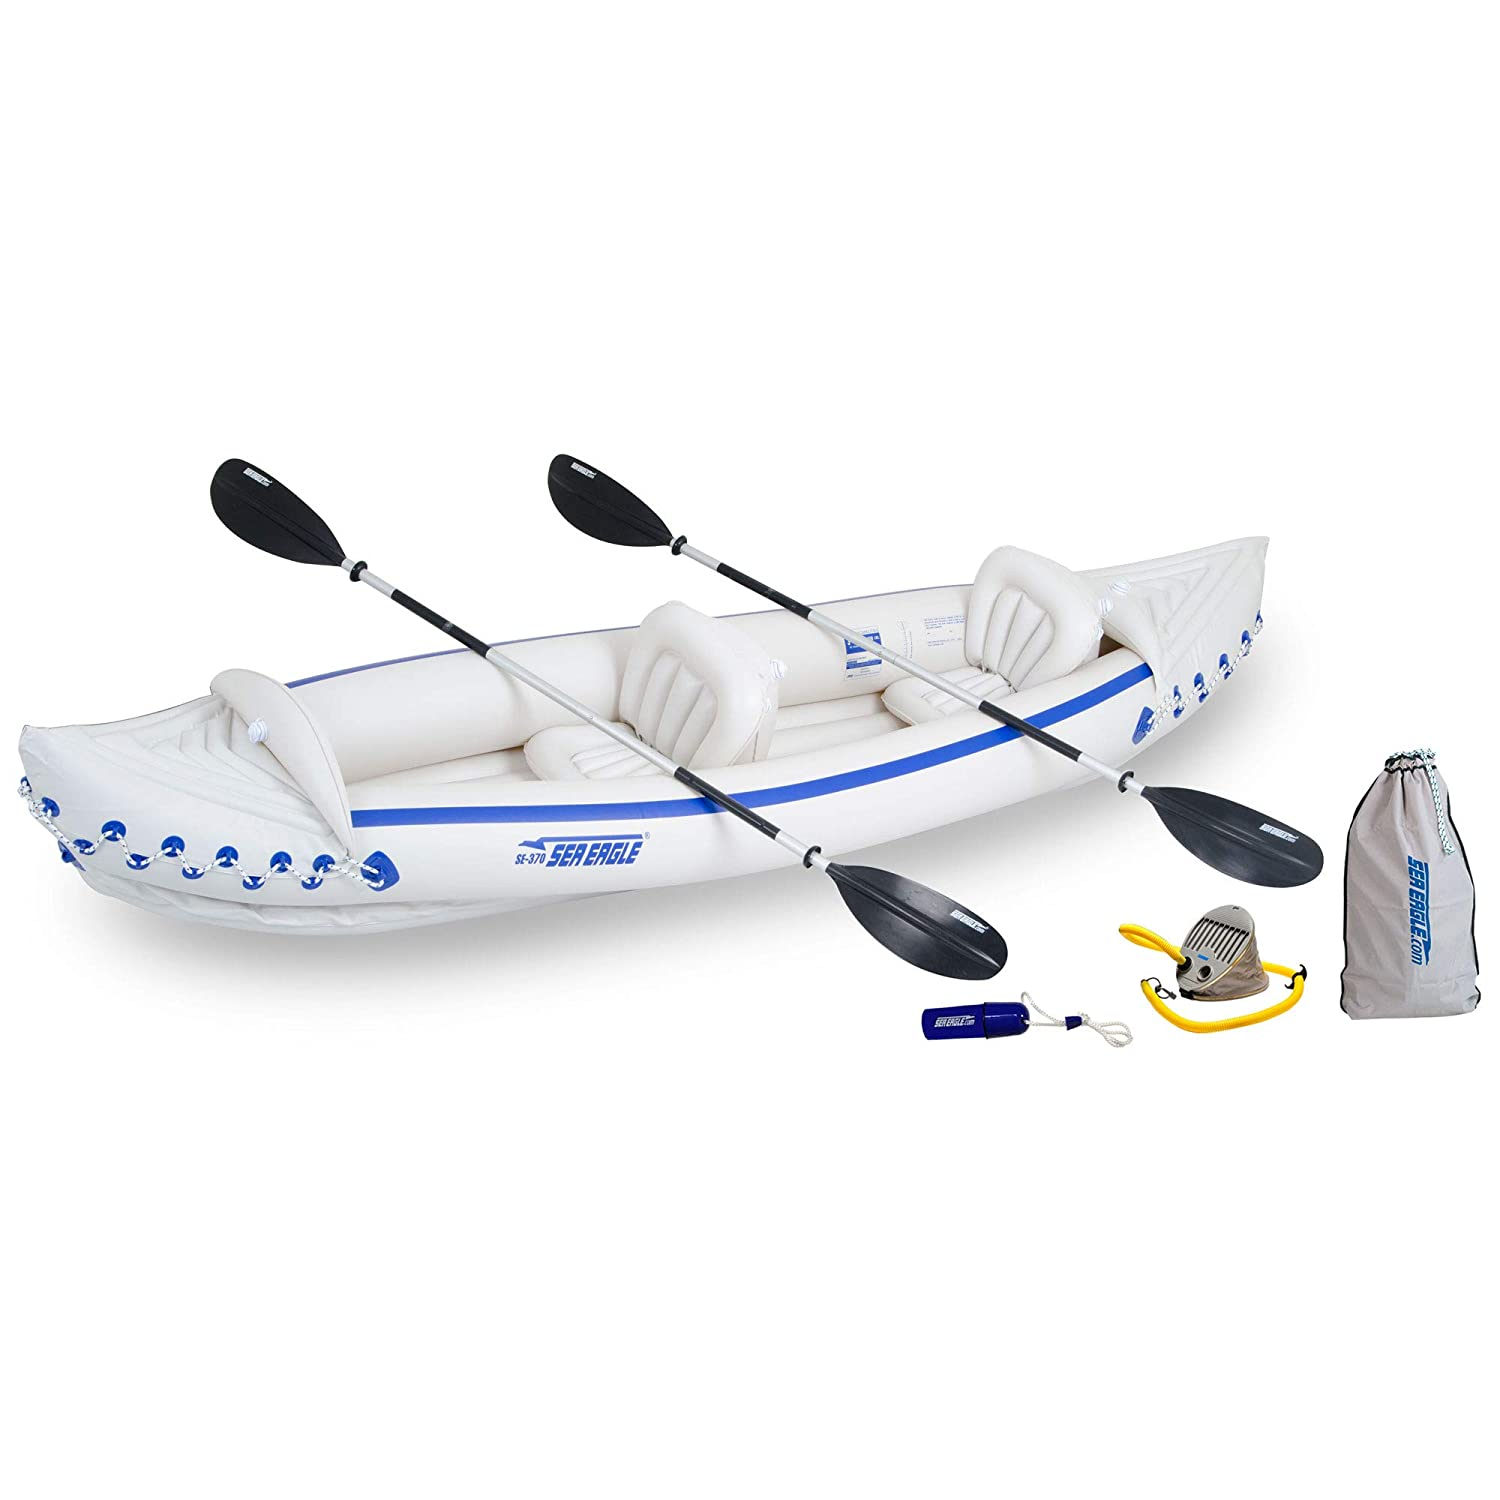 Sea Eagle 370 Deluxe | Best Inflatable Sports Kayak